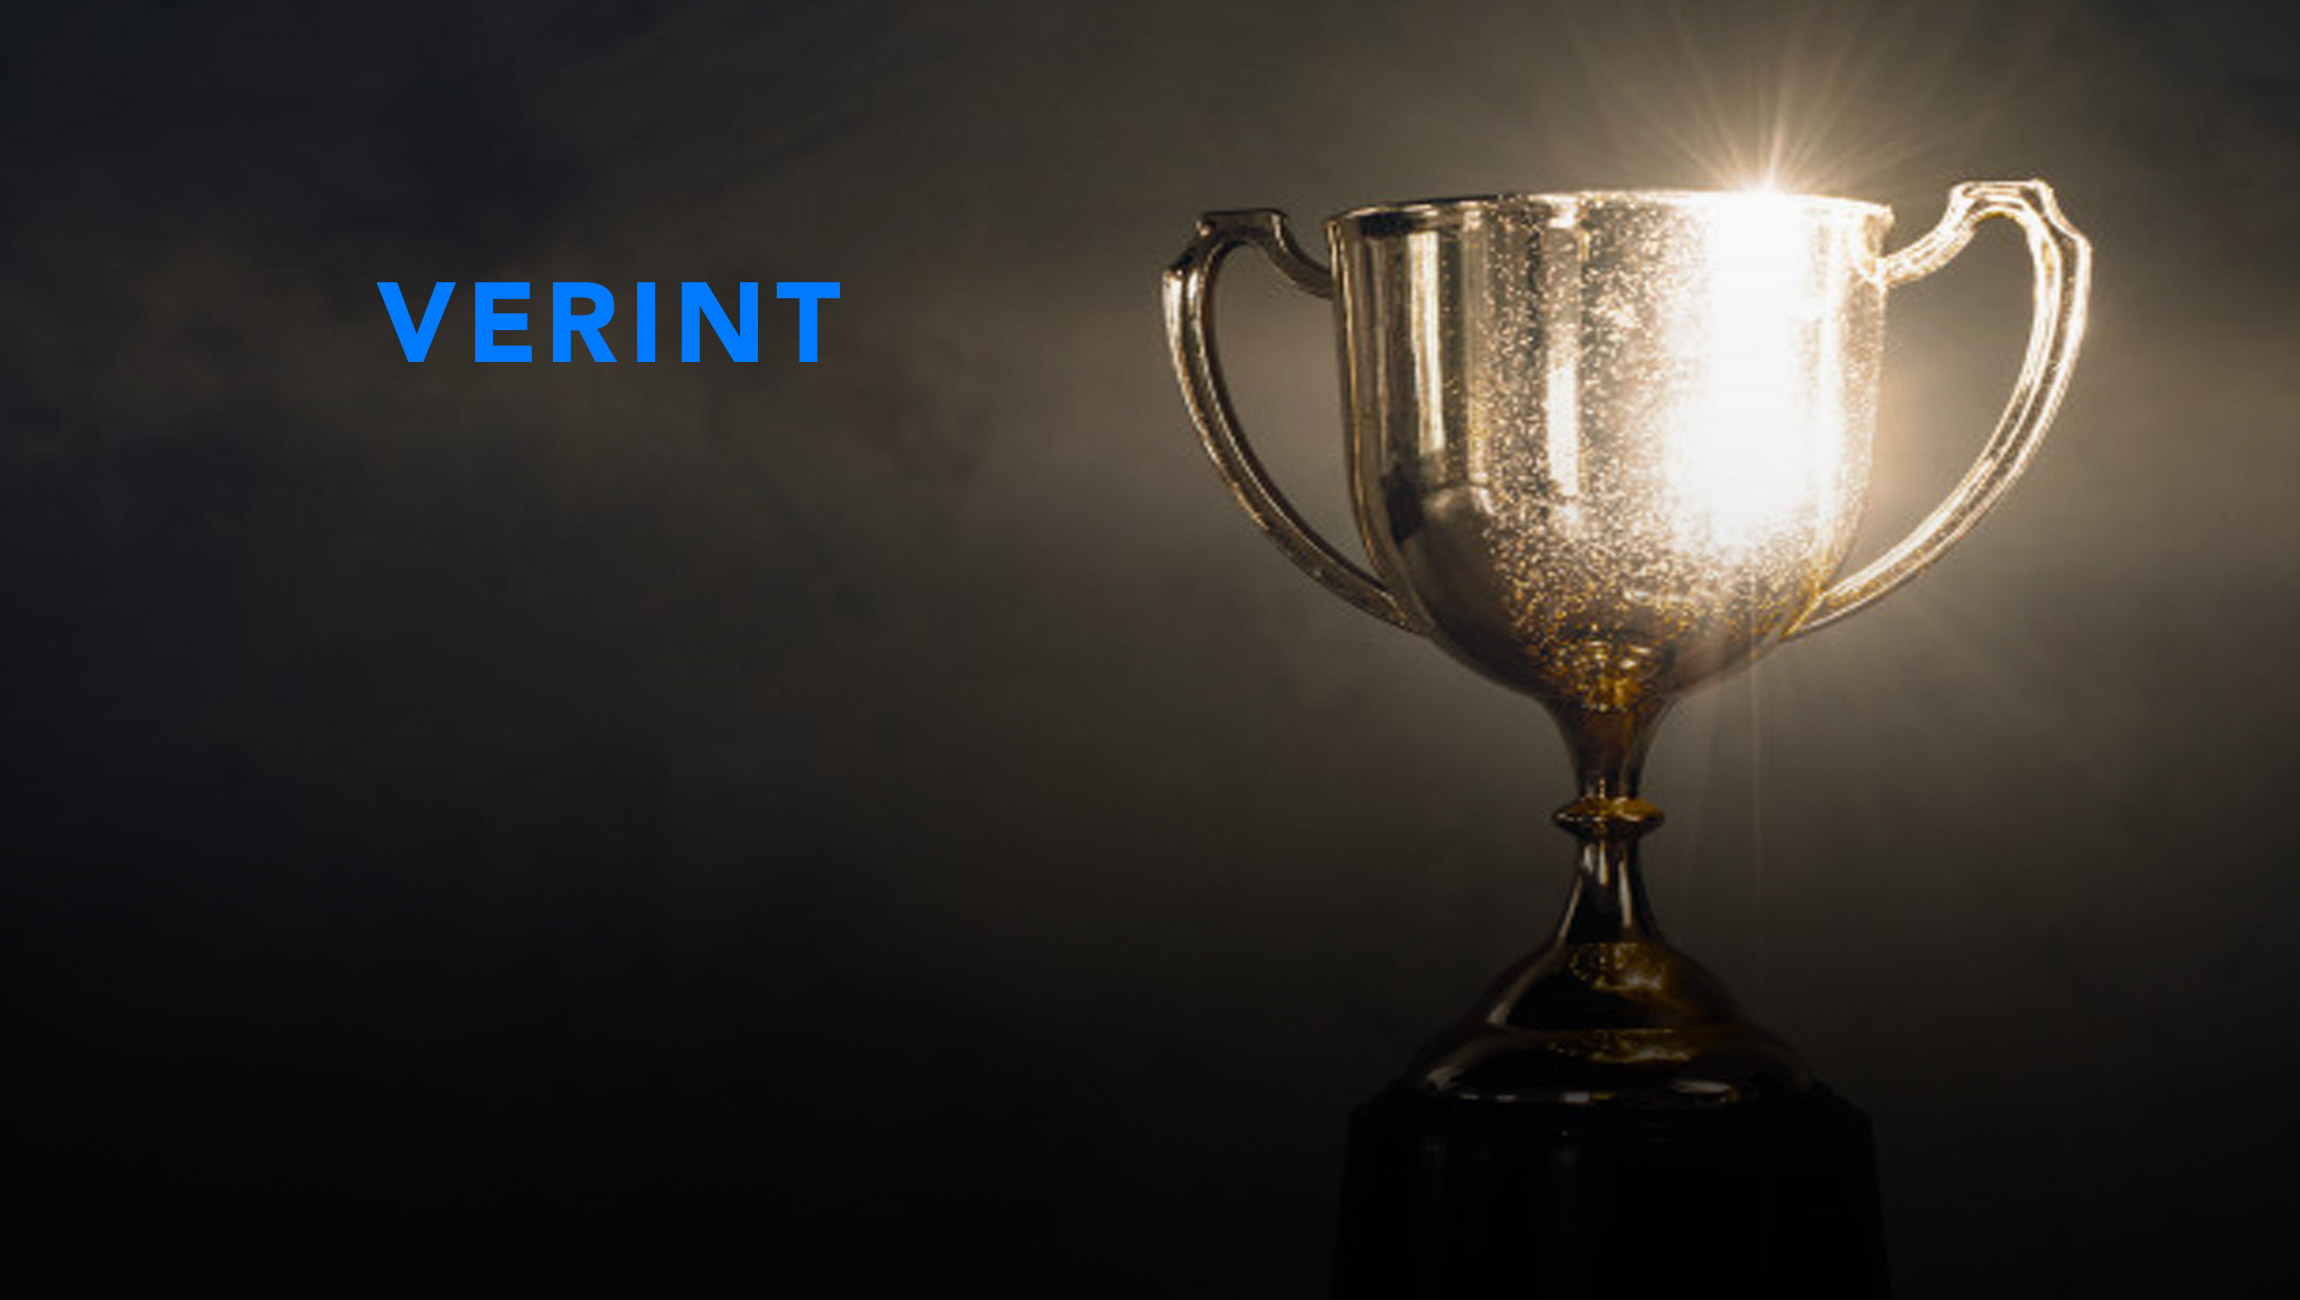 Verint Receives Multiple Awards for Excellence, Leadership in Customer Engagement